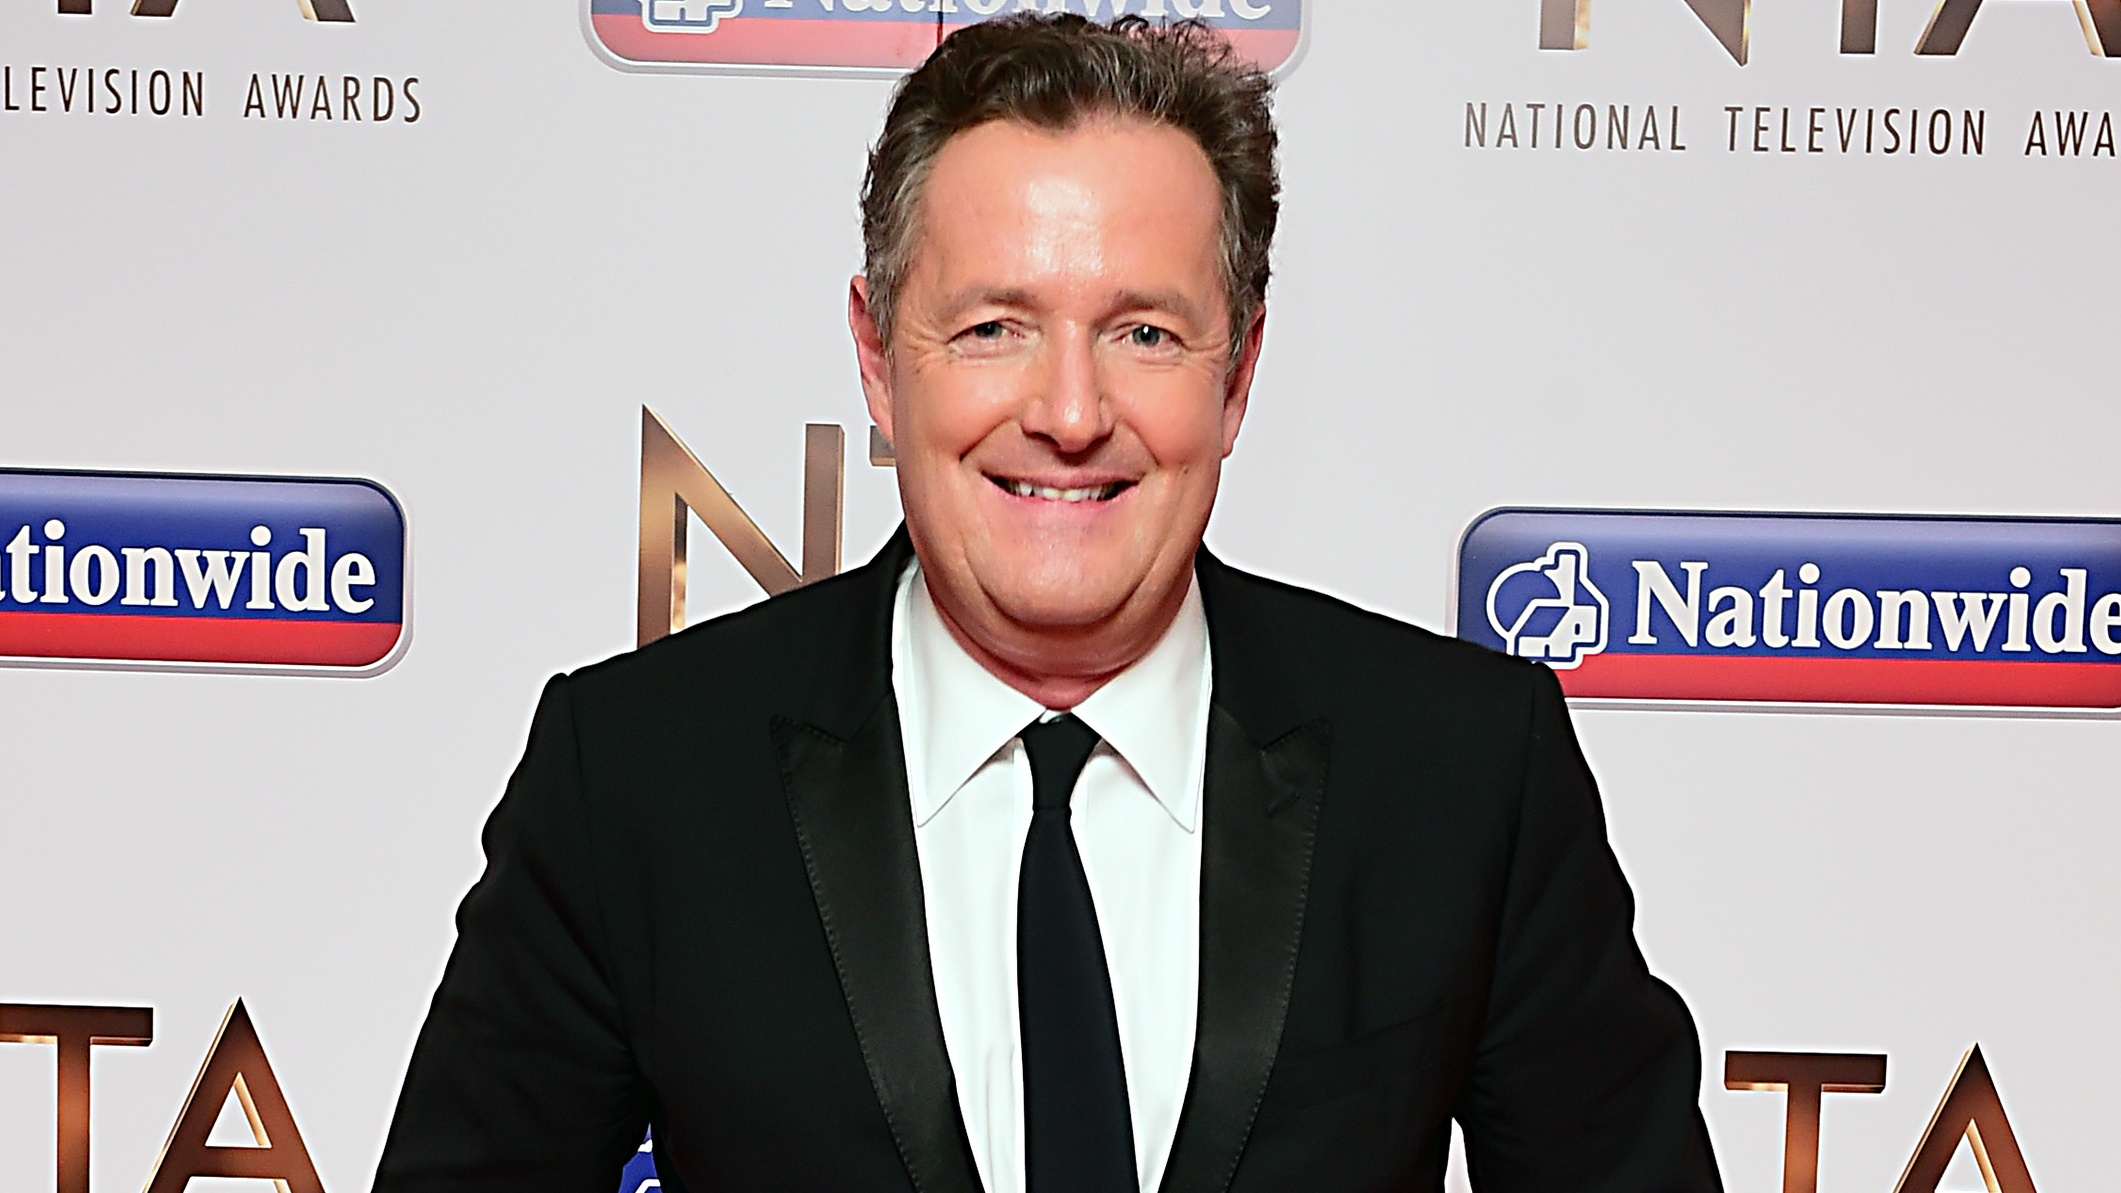 Piers Morgan thrills fans with rare photo of handsome son Stanley